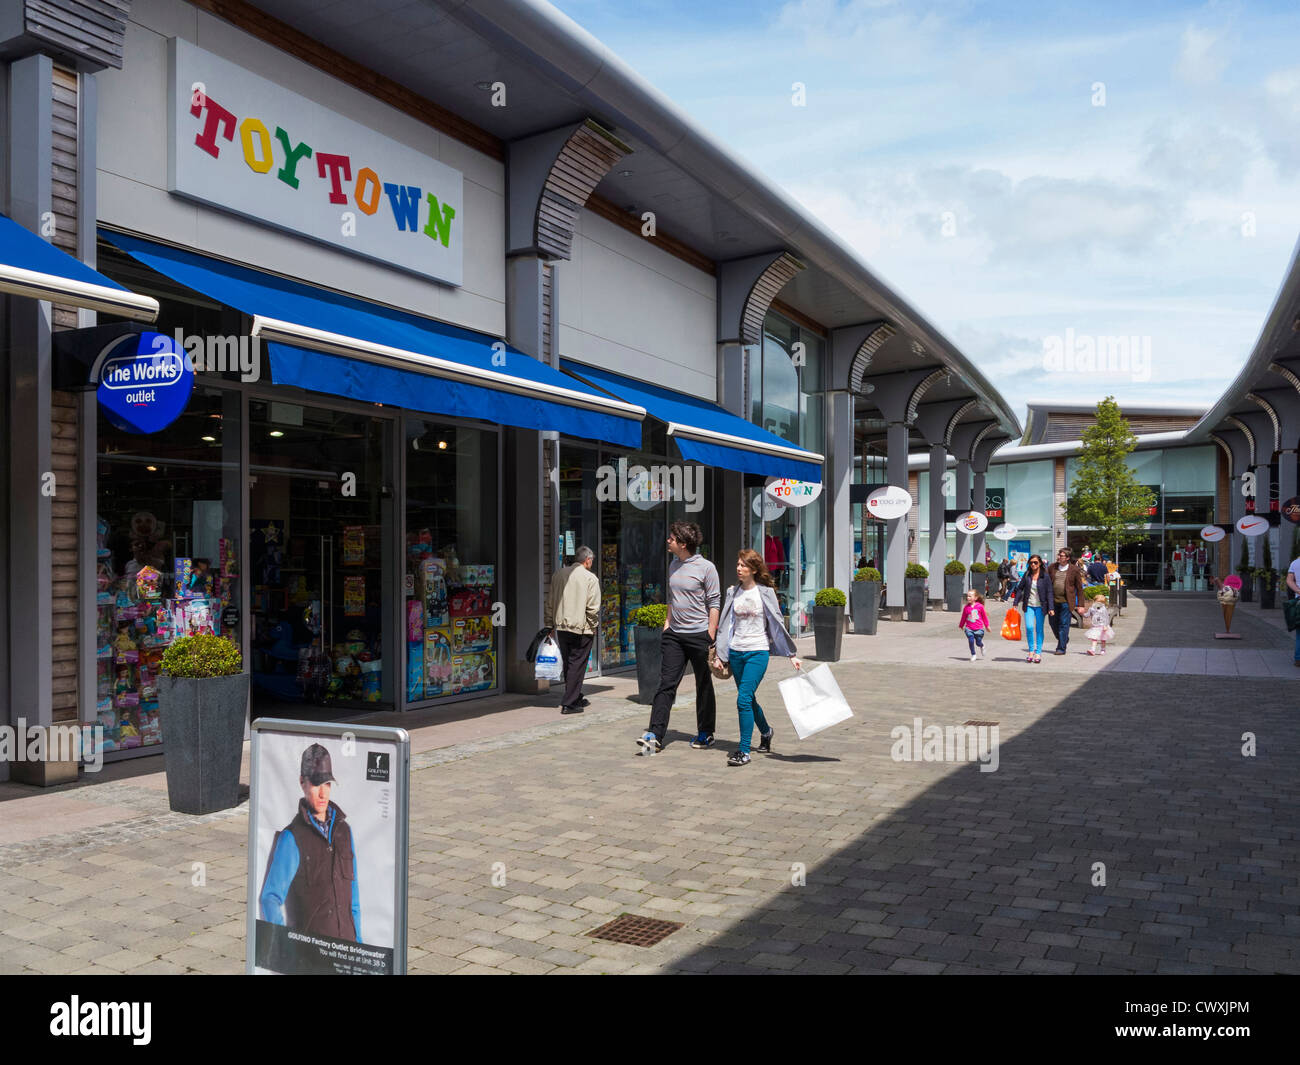 Shoppers at The Outlet shopping centre, Banbridge, County Down, Northern Ireland - Stock Image